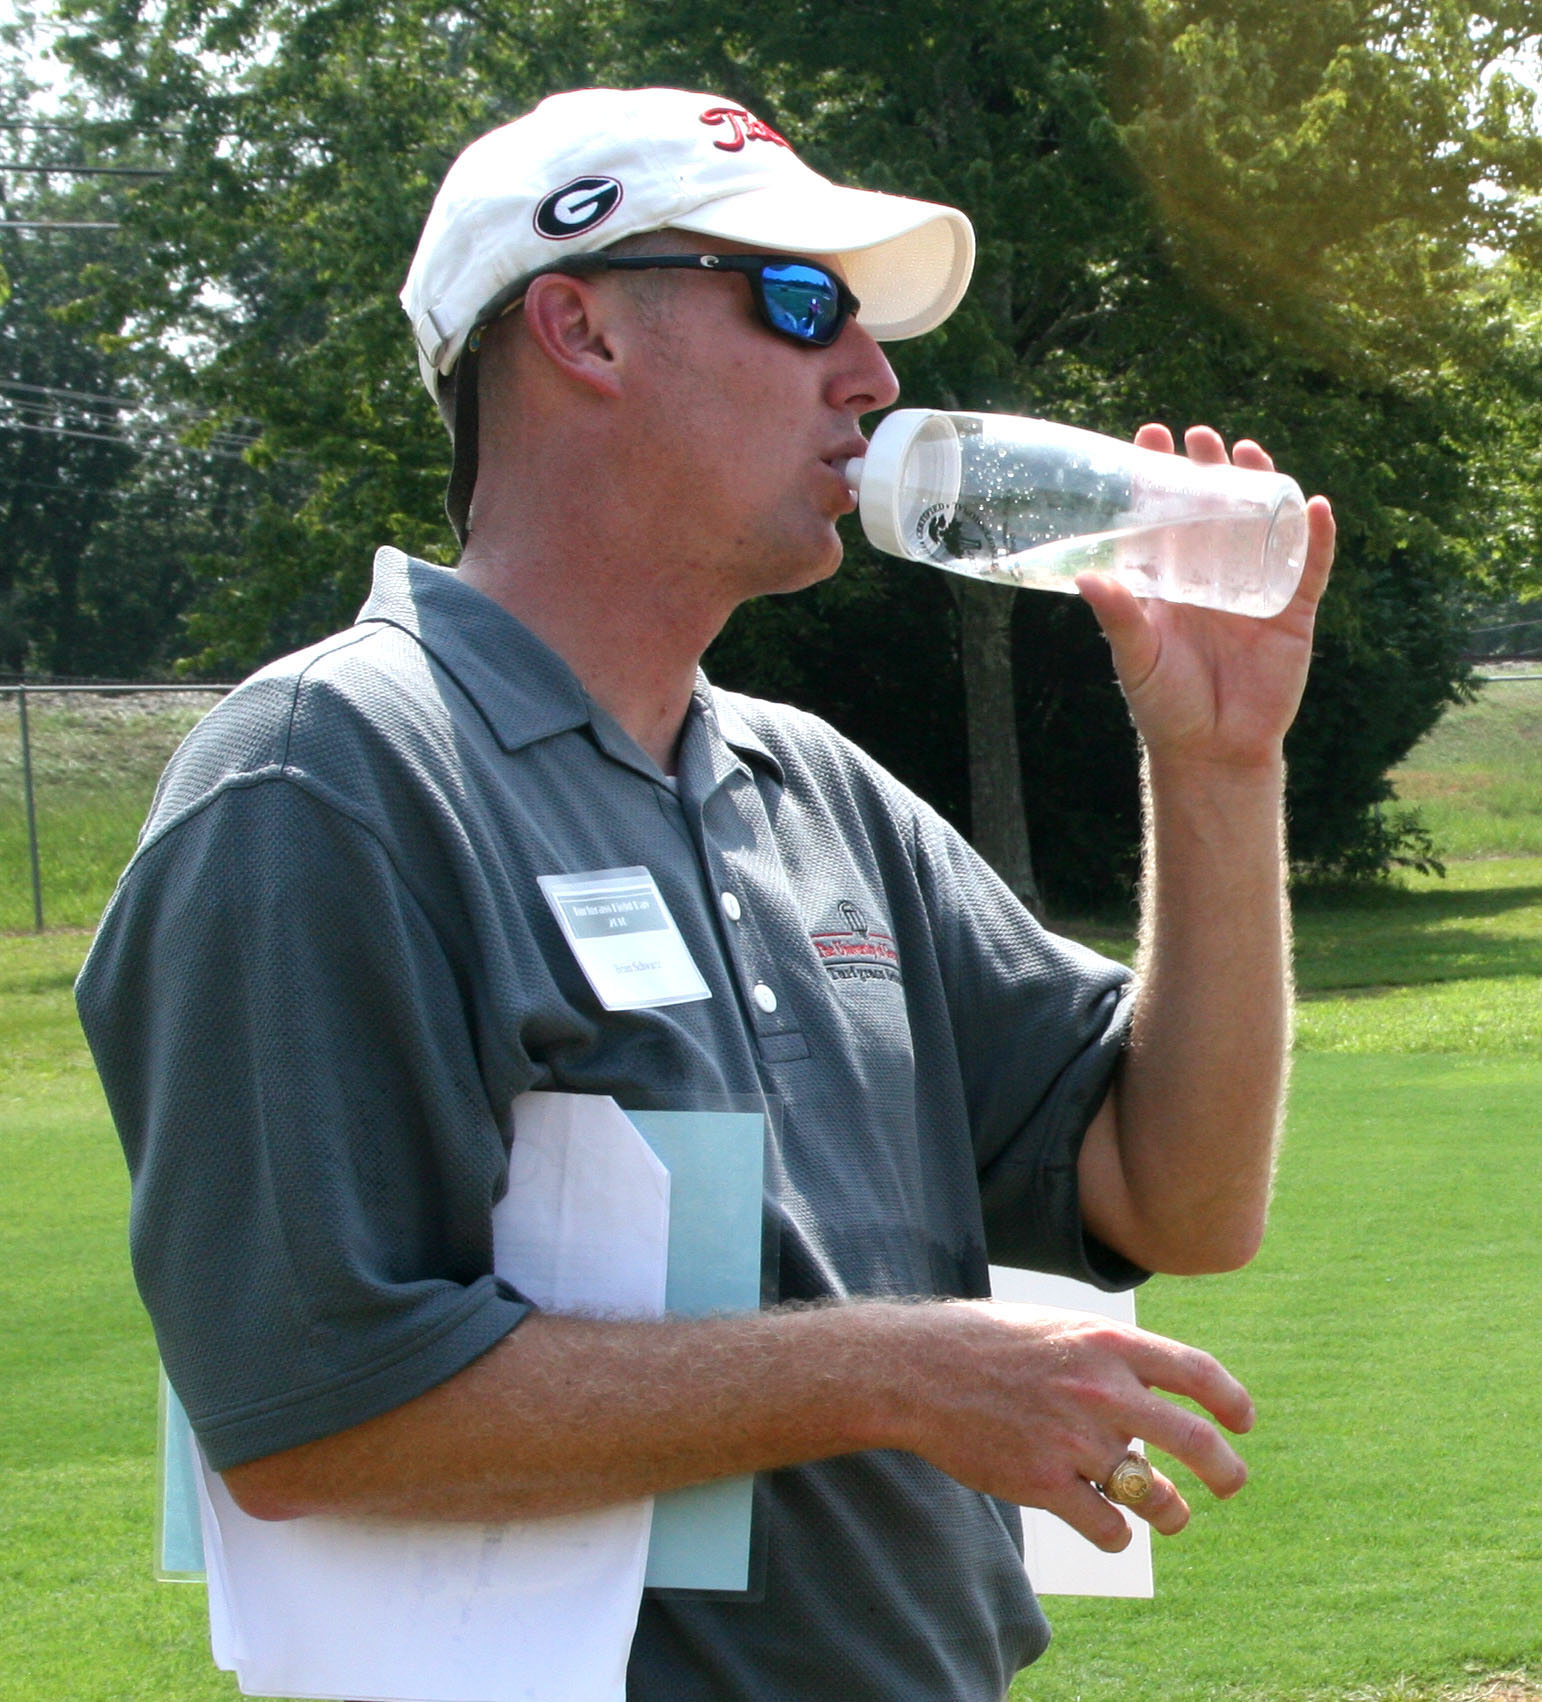 During extremely hot weather it is essential to drink plenty of fluids to stay hydrated. University of Georgia experts say water is the best choice and caffinated or alcoholic drinks are the worst choices.